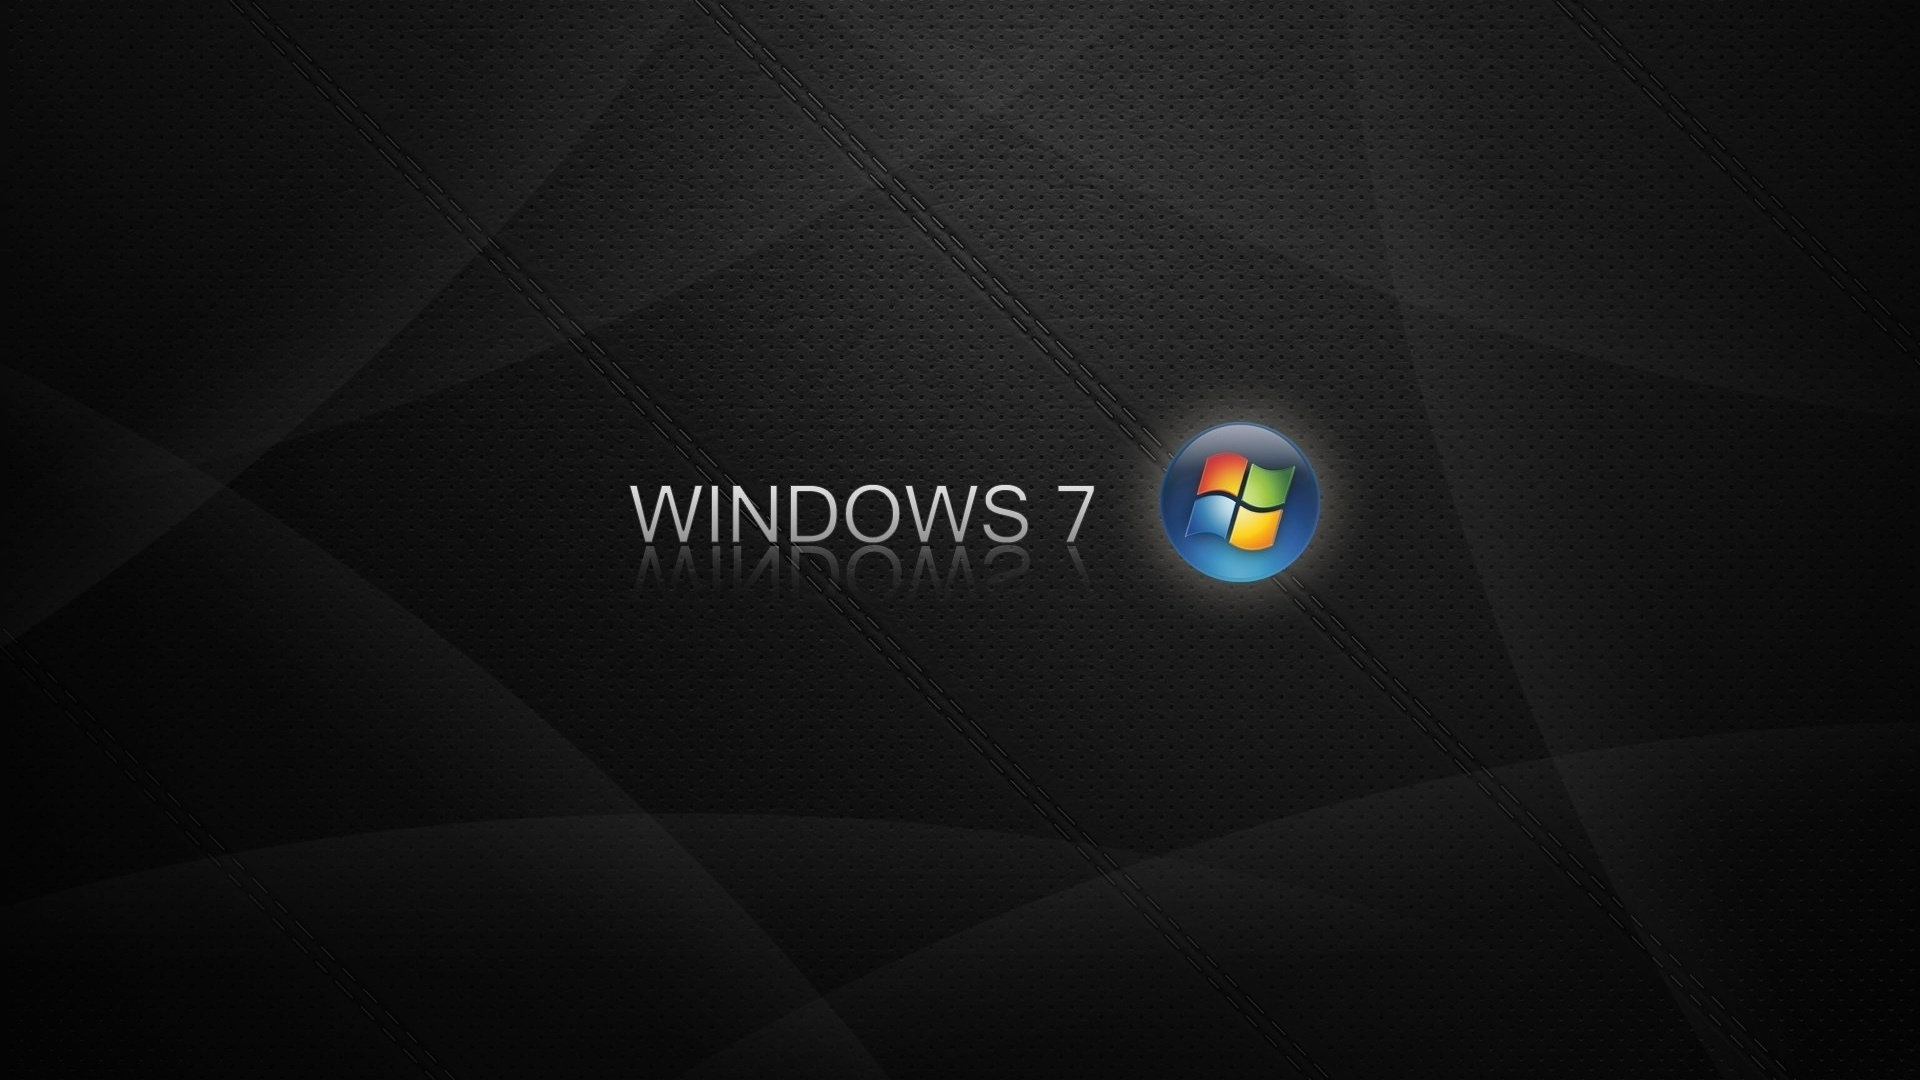 1920X1080 Wallpaper Windows 7 http://wallpaperstock.net/windows-7_wallpapers_33002_1920x1080_1.html